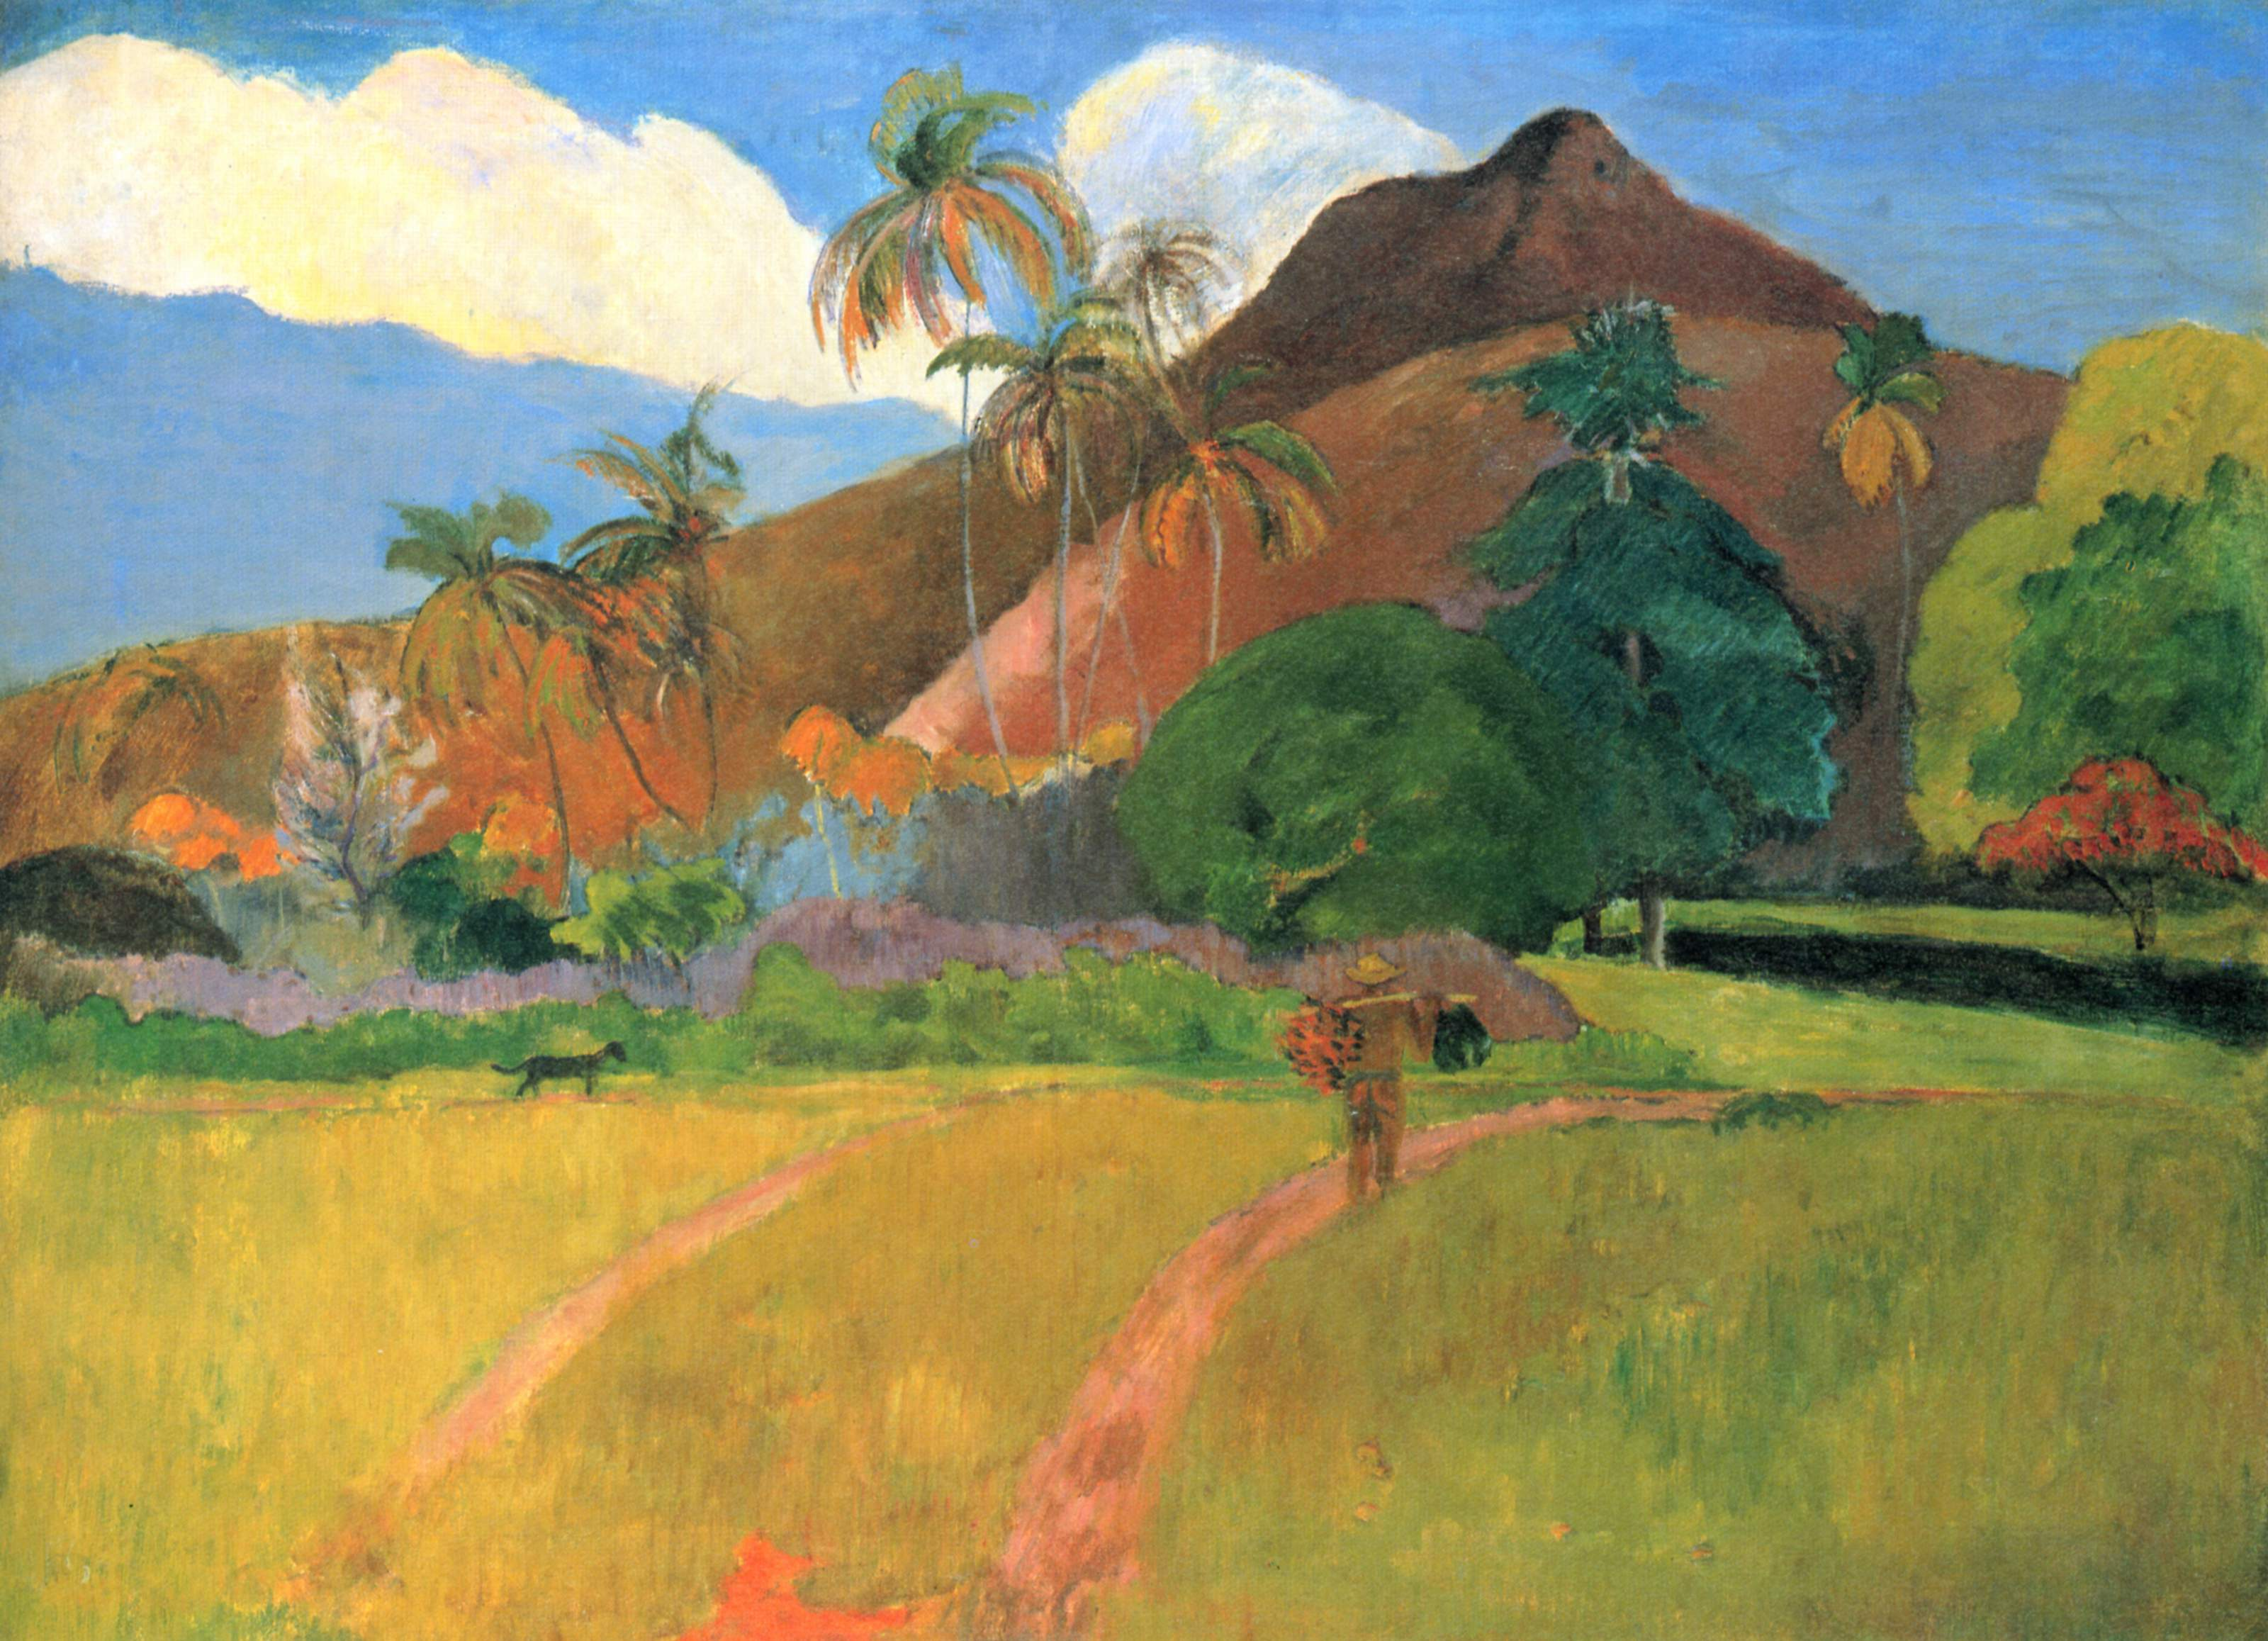 File:Paul Gauguin 011.jpg - Wikipedia